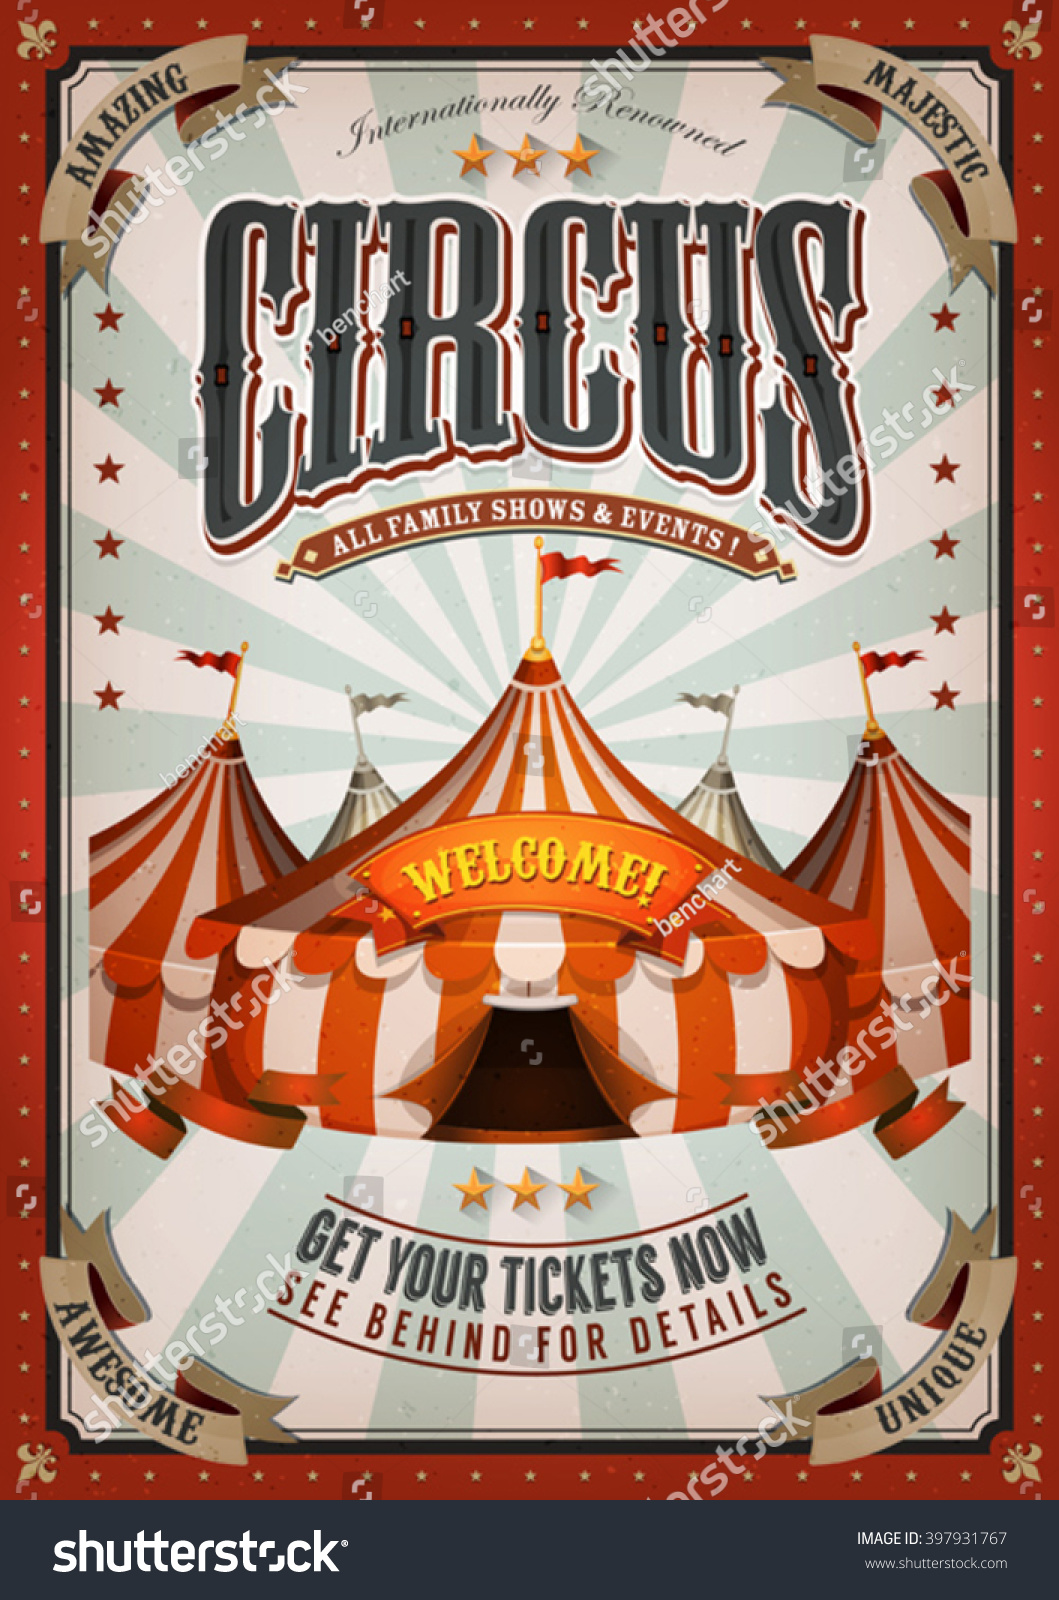 Vintage circus poster big top illustration retro stock for Circus posters free